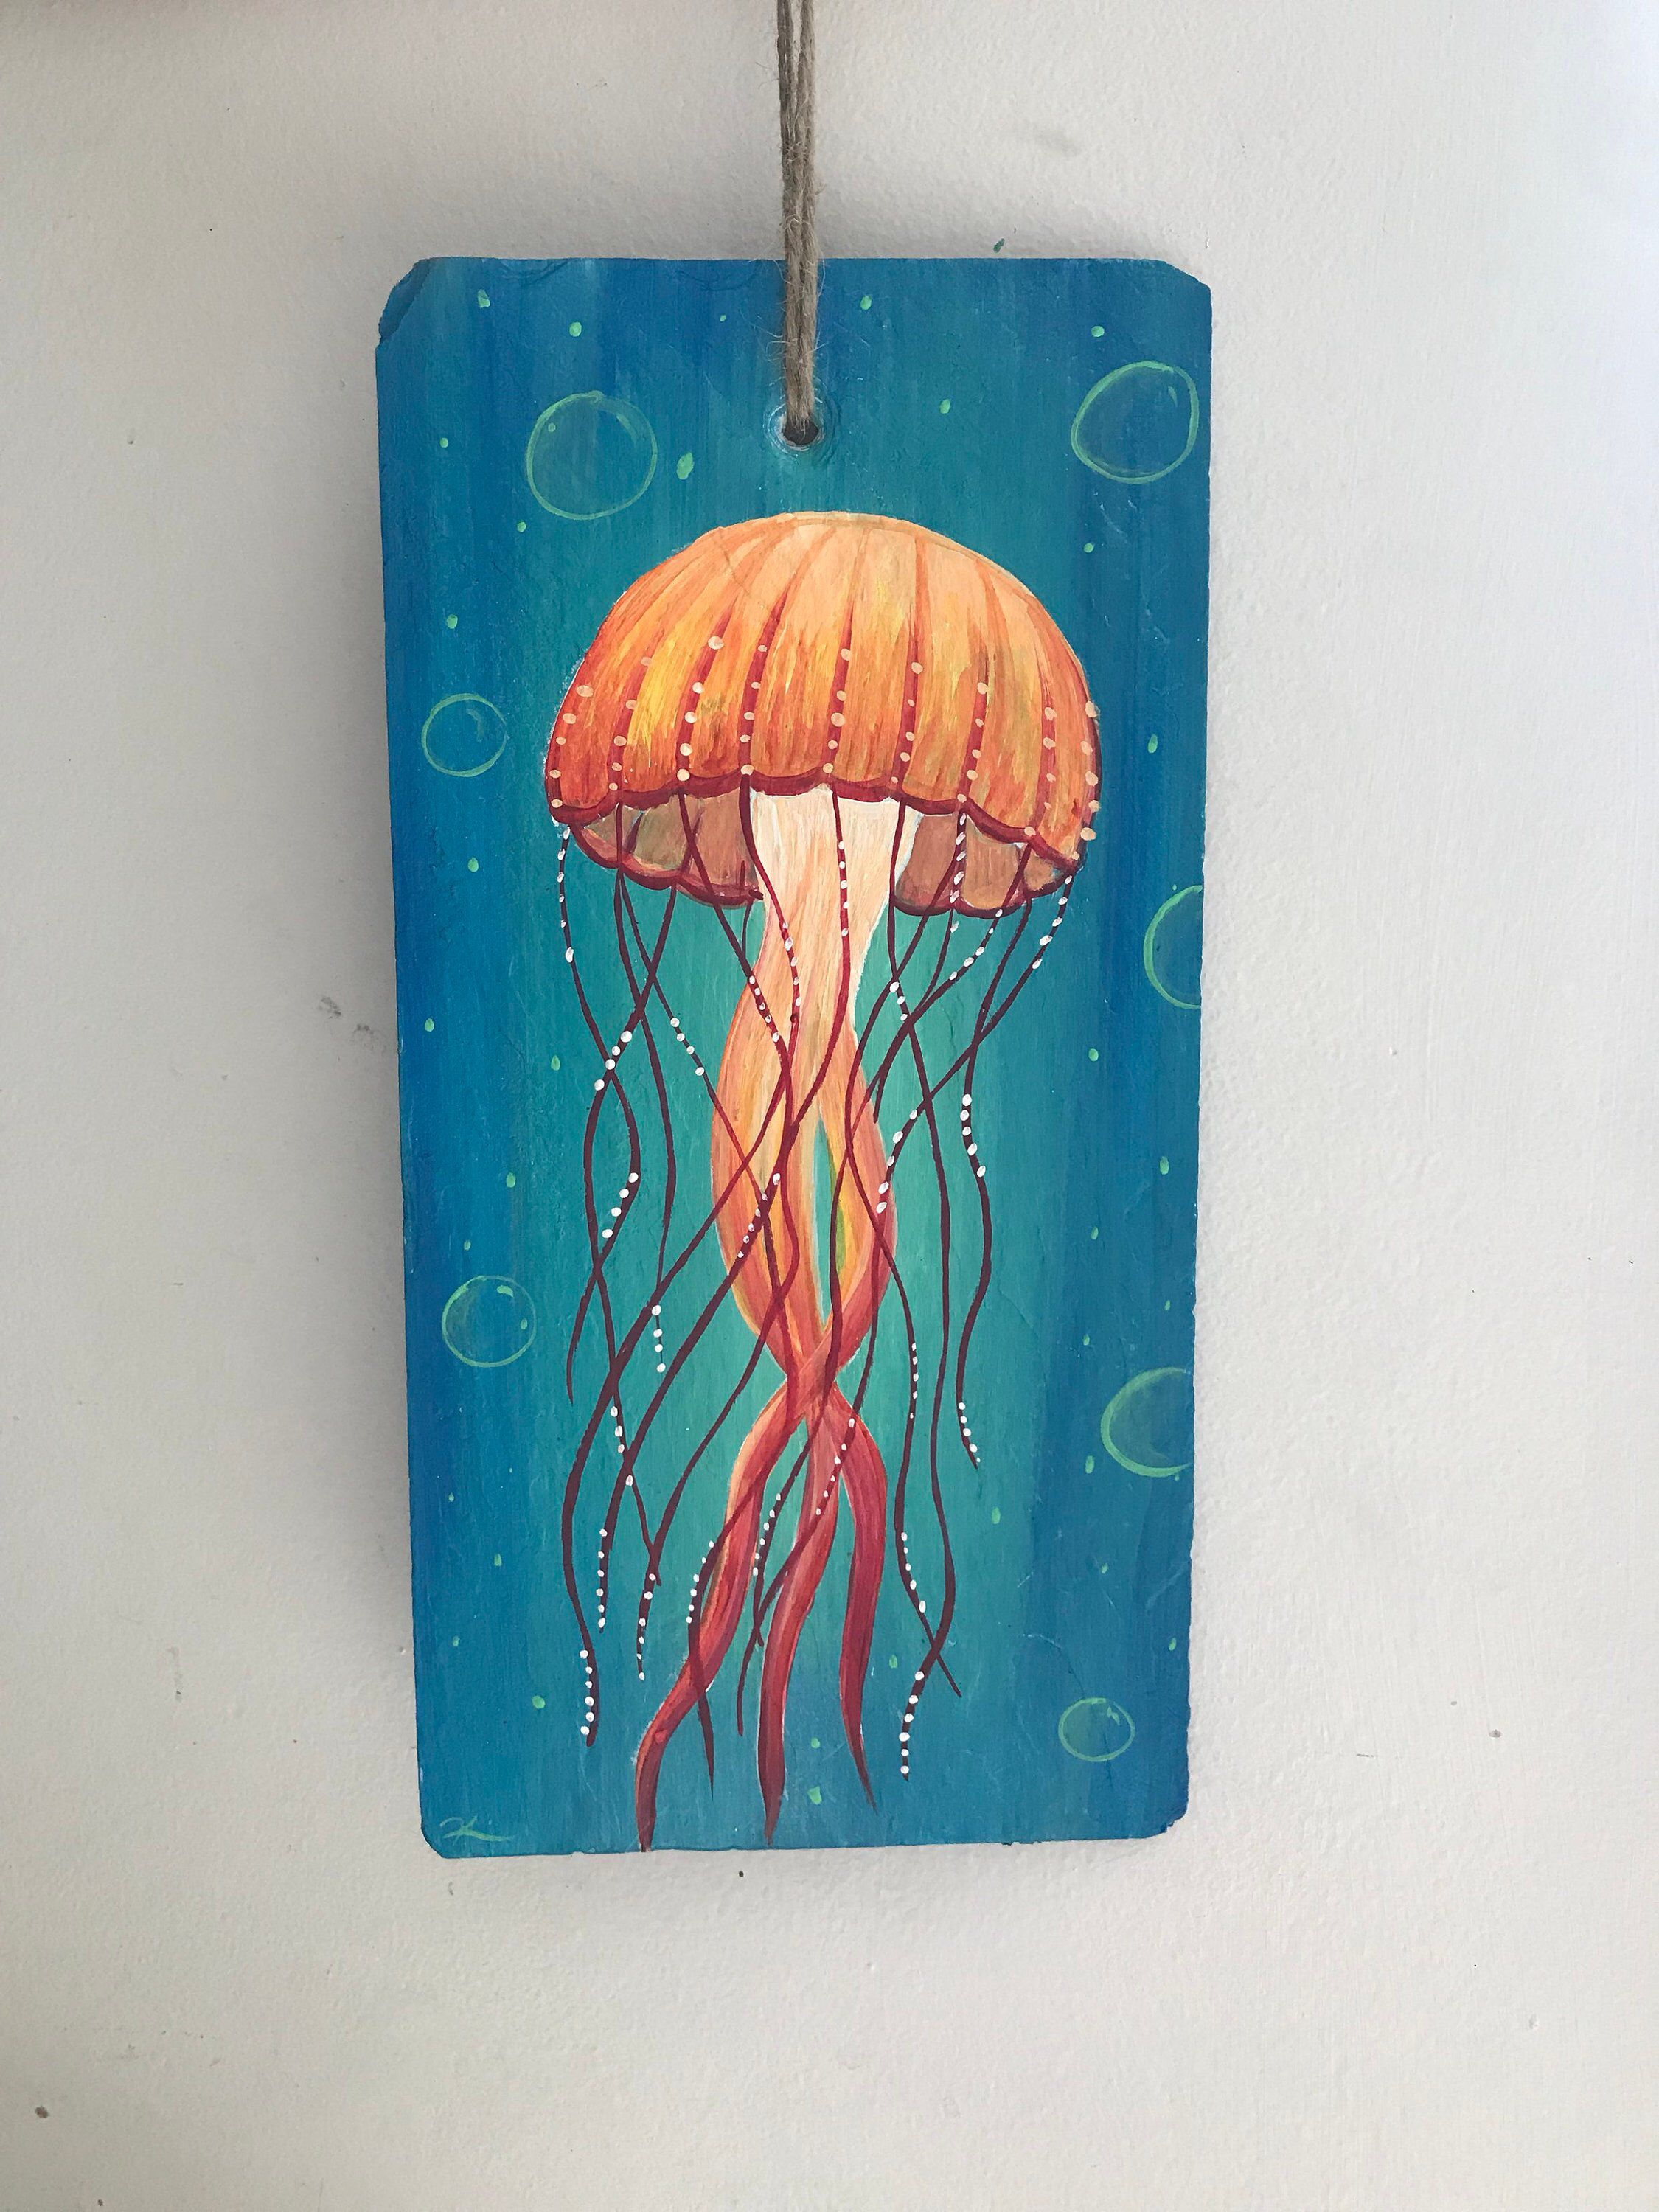 Excited To Share This Item From My Etsy Shop Jellyfish Art Art Painting Jellyfishart Jellyfish Jellyfish Art Jellyfish Painting Jellyfish Illustration